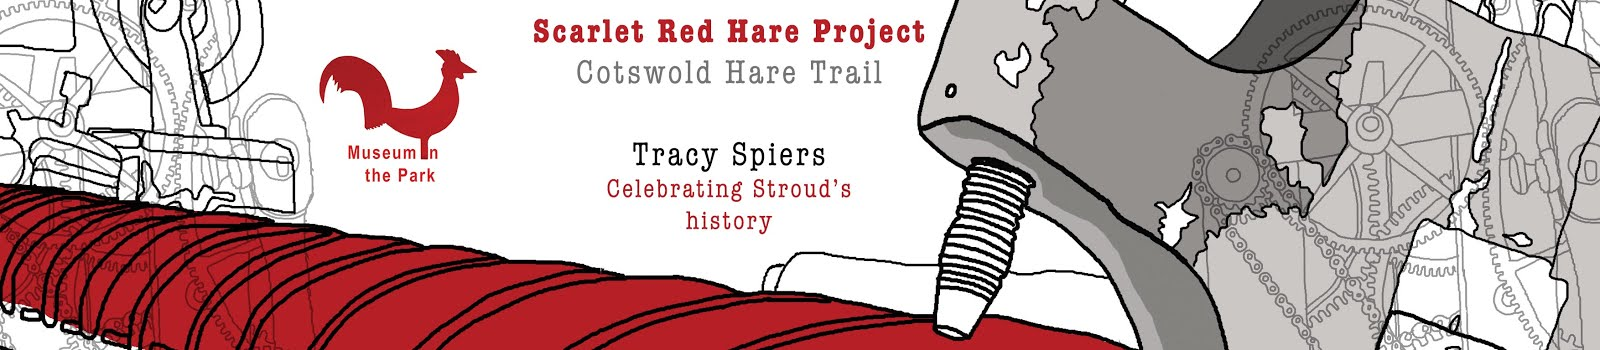 Creating the Scarlet Red Hare